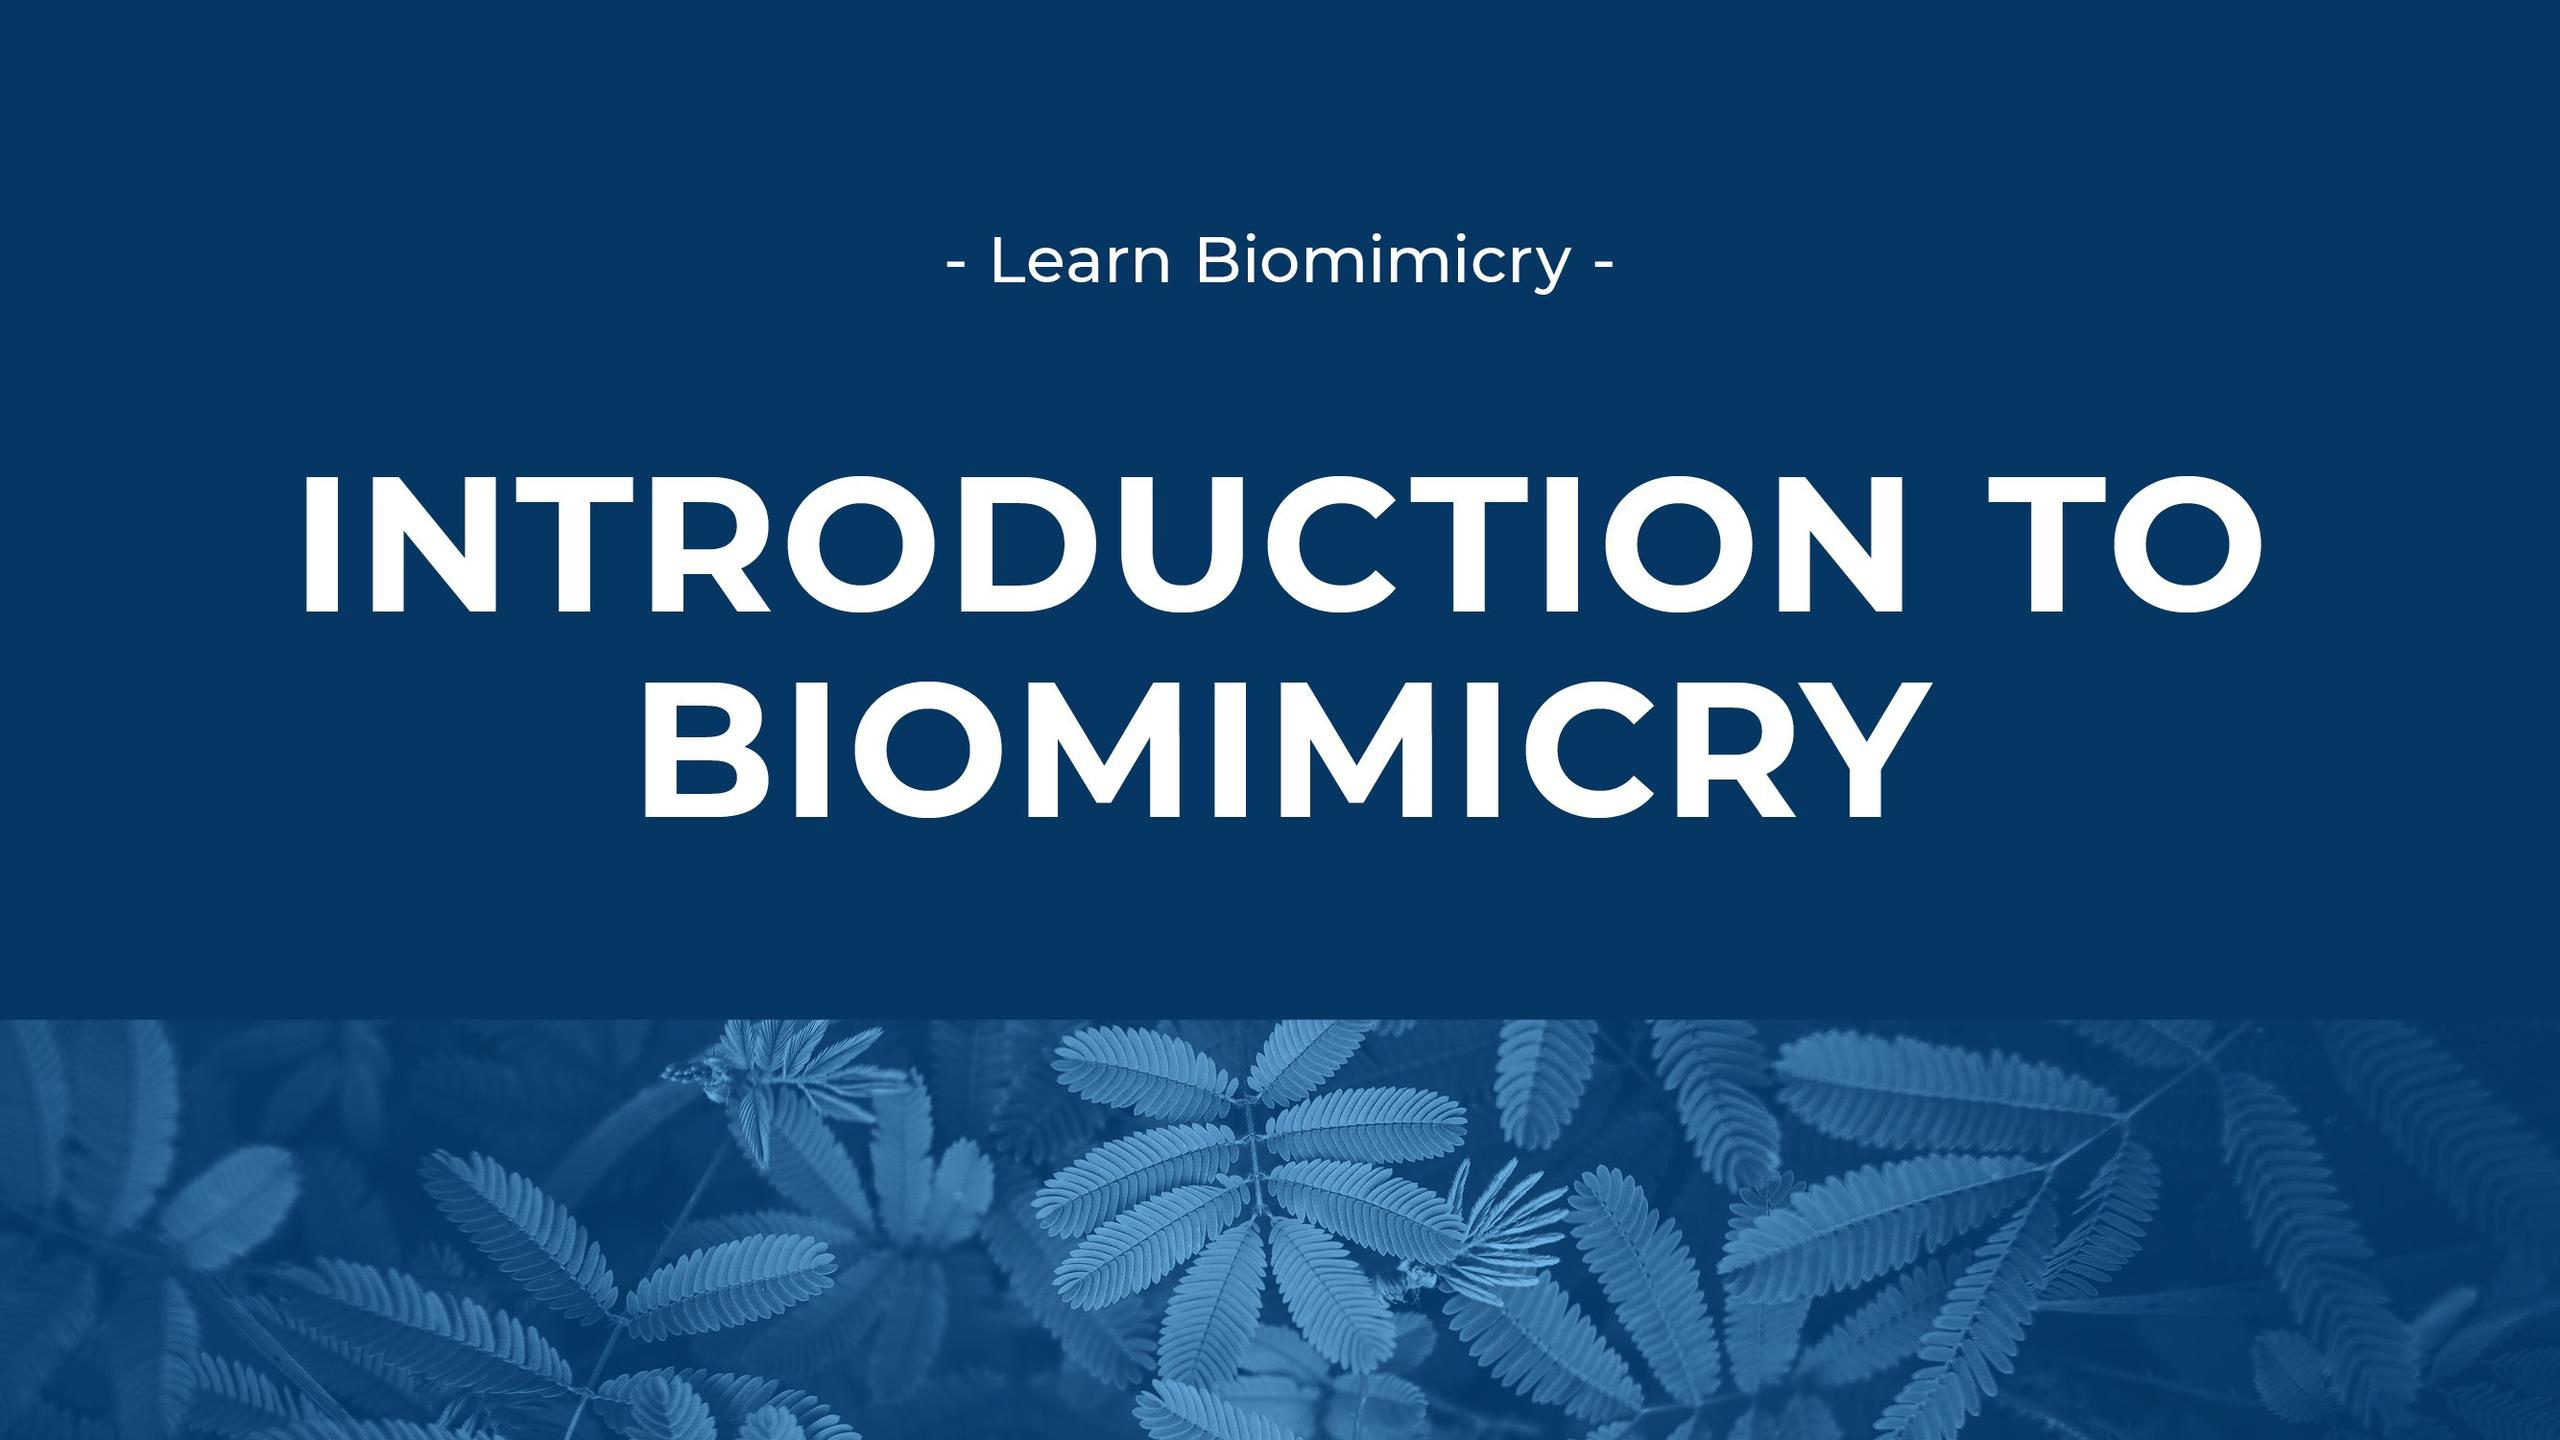 Introduction to Biomimicry image